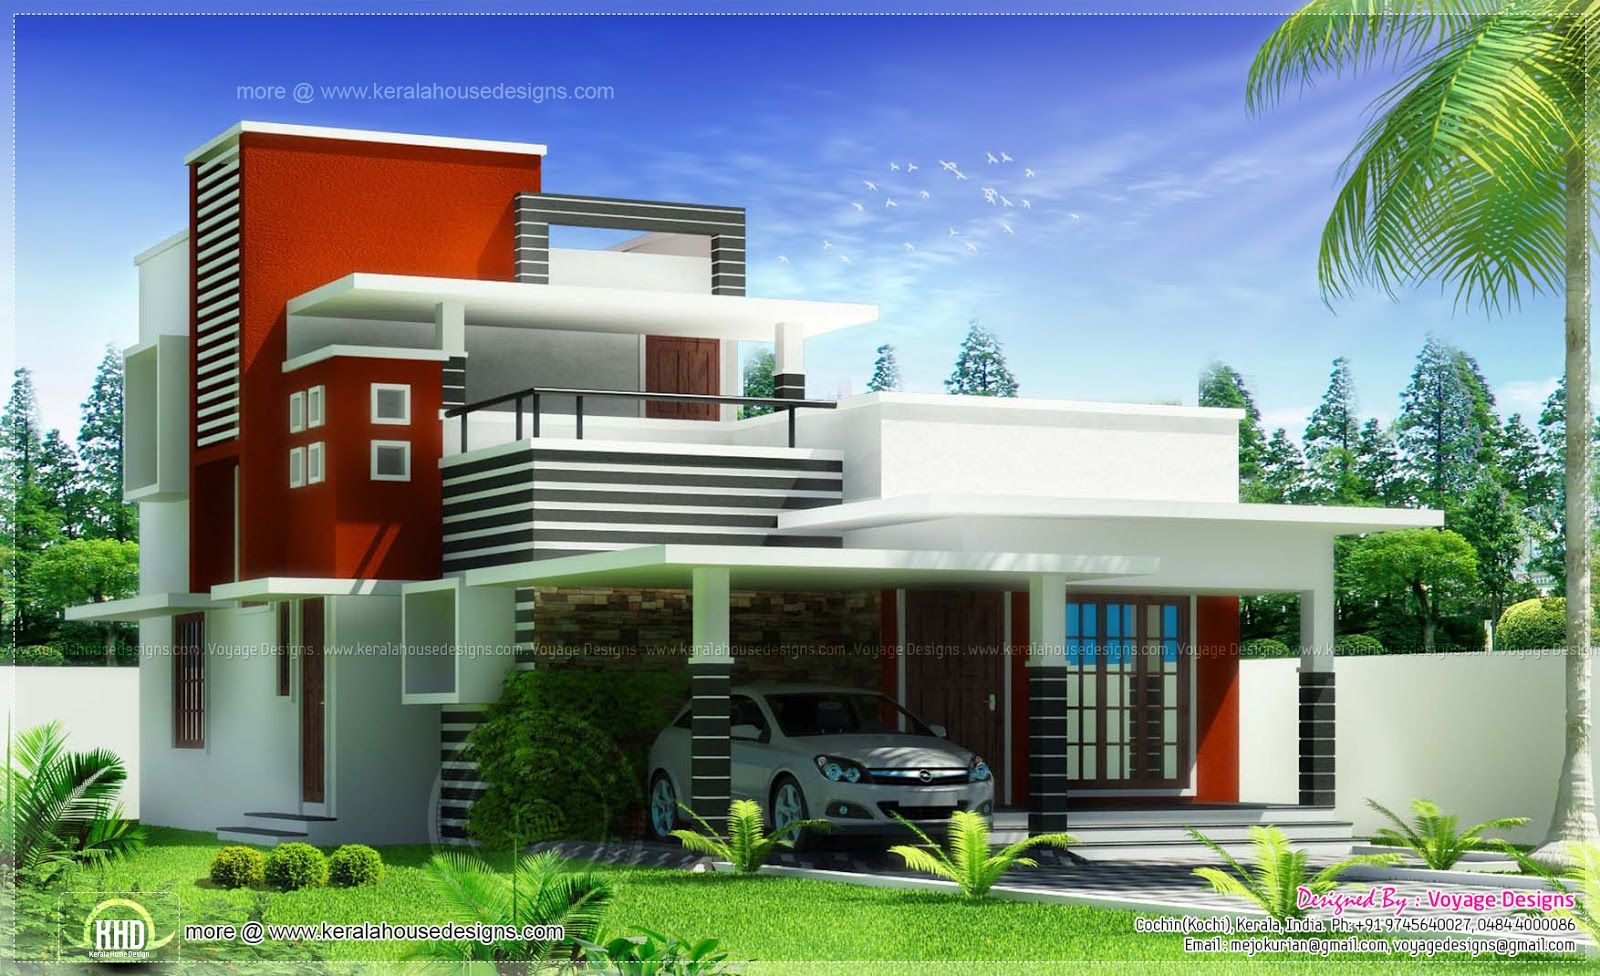 Kerala house designs architecture pinterest kerala for Modern house in kerala